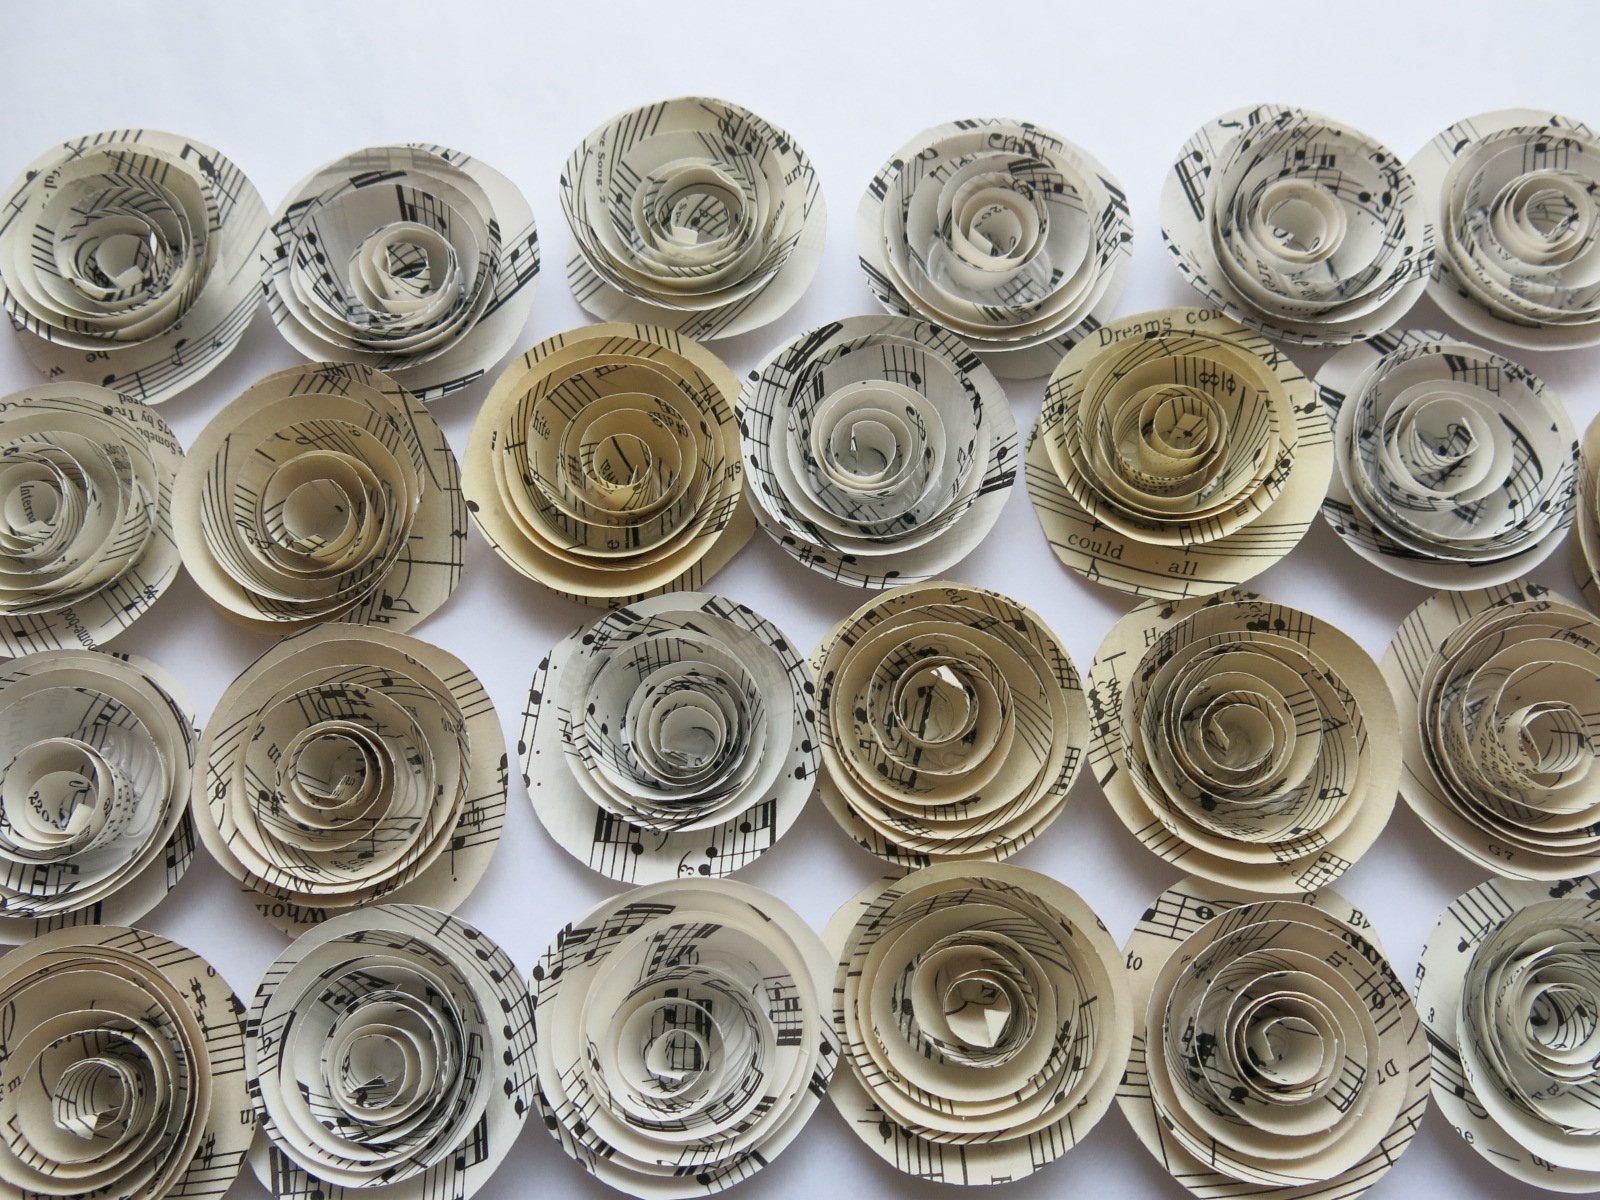 Sheet-Music-Roses-Set-of-24-Musical-Party-Theme-Decorations-15-Paper-Flowers-Popular-Baby-Shower-Decor-Wedding-Centerpiece-Teacher-Gift-Idea